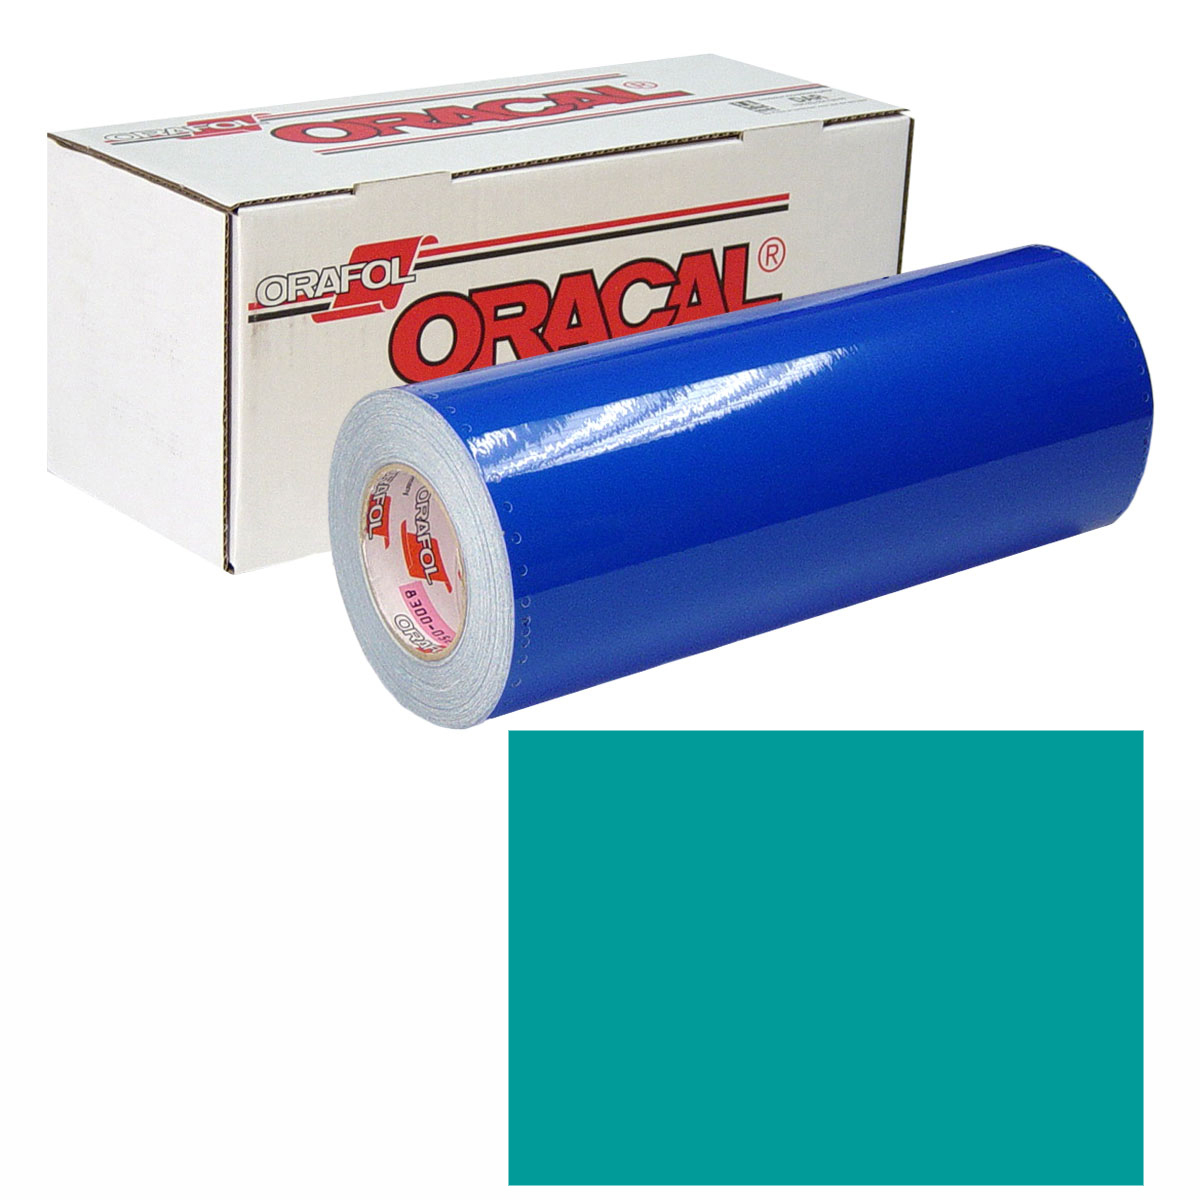 ORACAL 631 Unp 30in X 50yd 054 Turquoise